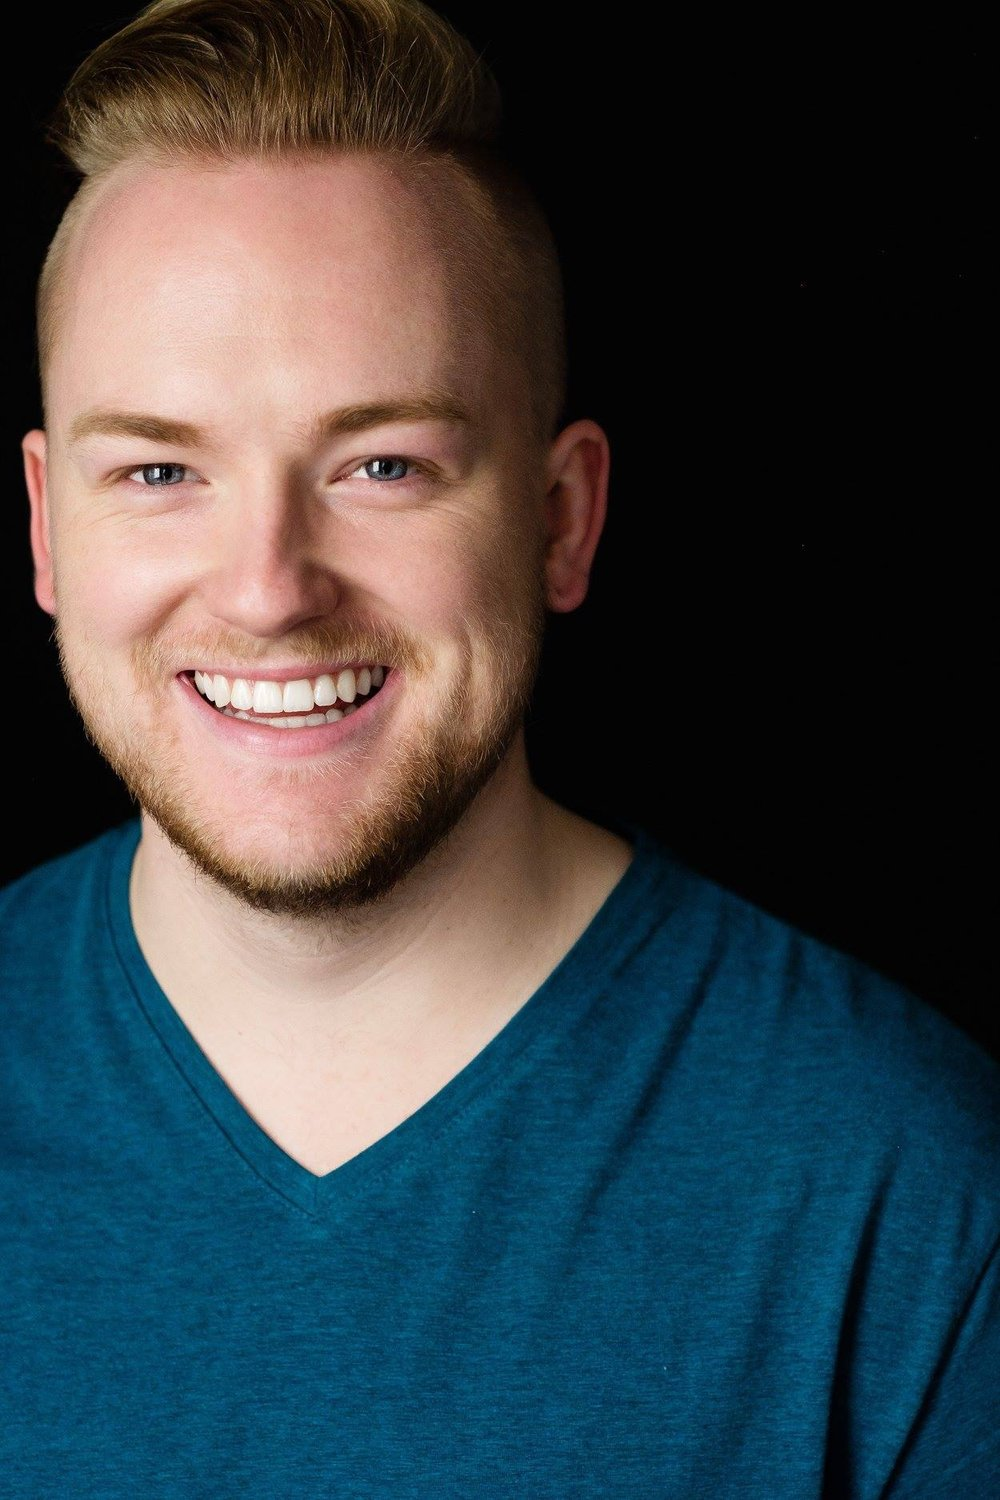 Jarred Stephen Meek - Stage ManagerJarred Stephen Meek is a recent graduate of the acting program at Studio 58. Previous stage management credits include Spring 2018 Solo Shows, (Studio 58), Junie B. Jones (Bumbershoot Theatre). Select acting credits include Roy in The Way Station web pilot, Phillip Gove in Aint: The Musical as a part of Fourplay 2018, Dinosaur and Conveener in The Skin of Our Teeth, Edward K. Wehling Jr in 2BR02B (Studio 58), Charlie Brown in You're a Good Man, Charlie Brown!, Prince Dauntless in Once Upon a Mattress (Bumbershoot Theatre). Thank you to Zac Scott and Sticks & Stones Theatre for giving me this opportunity to continue to develop as a theatre artist.